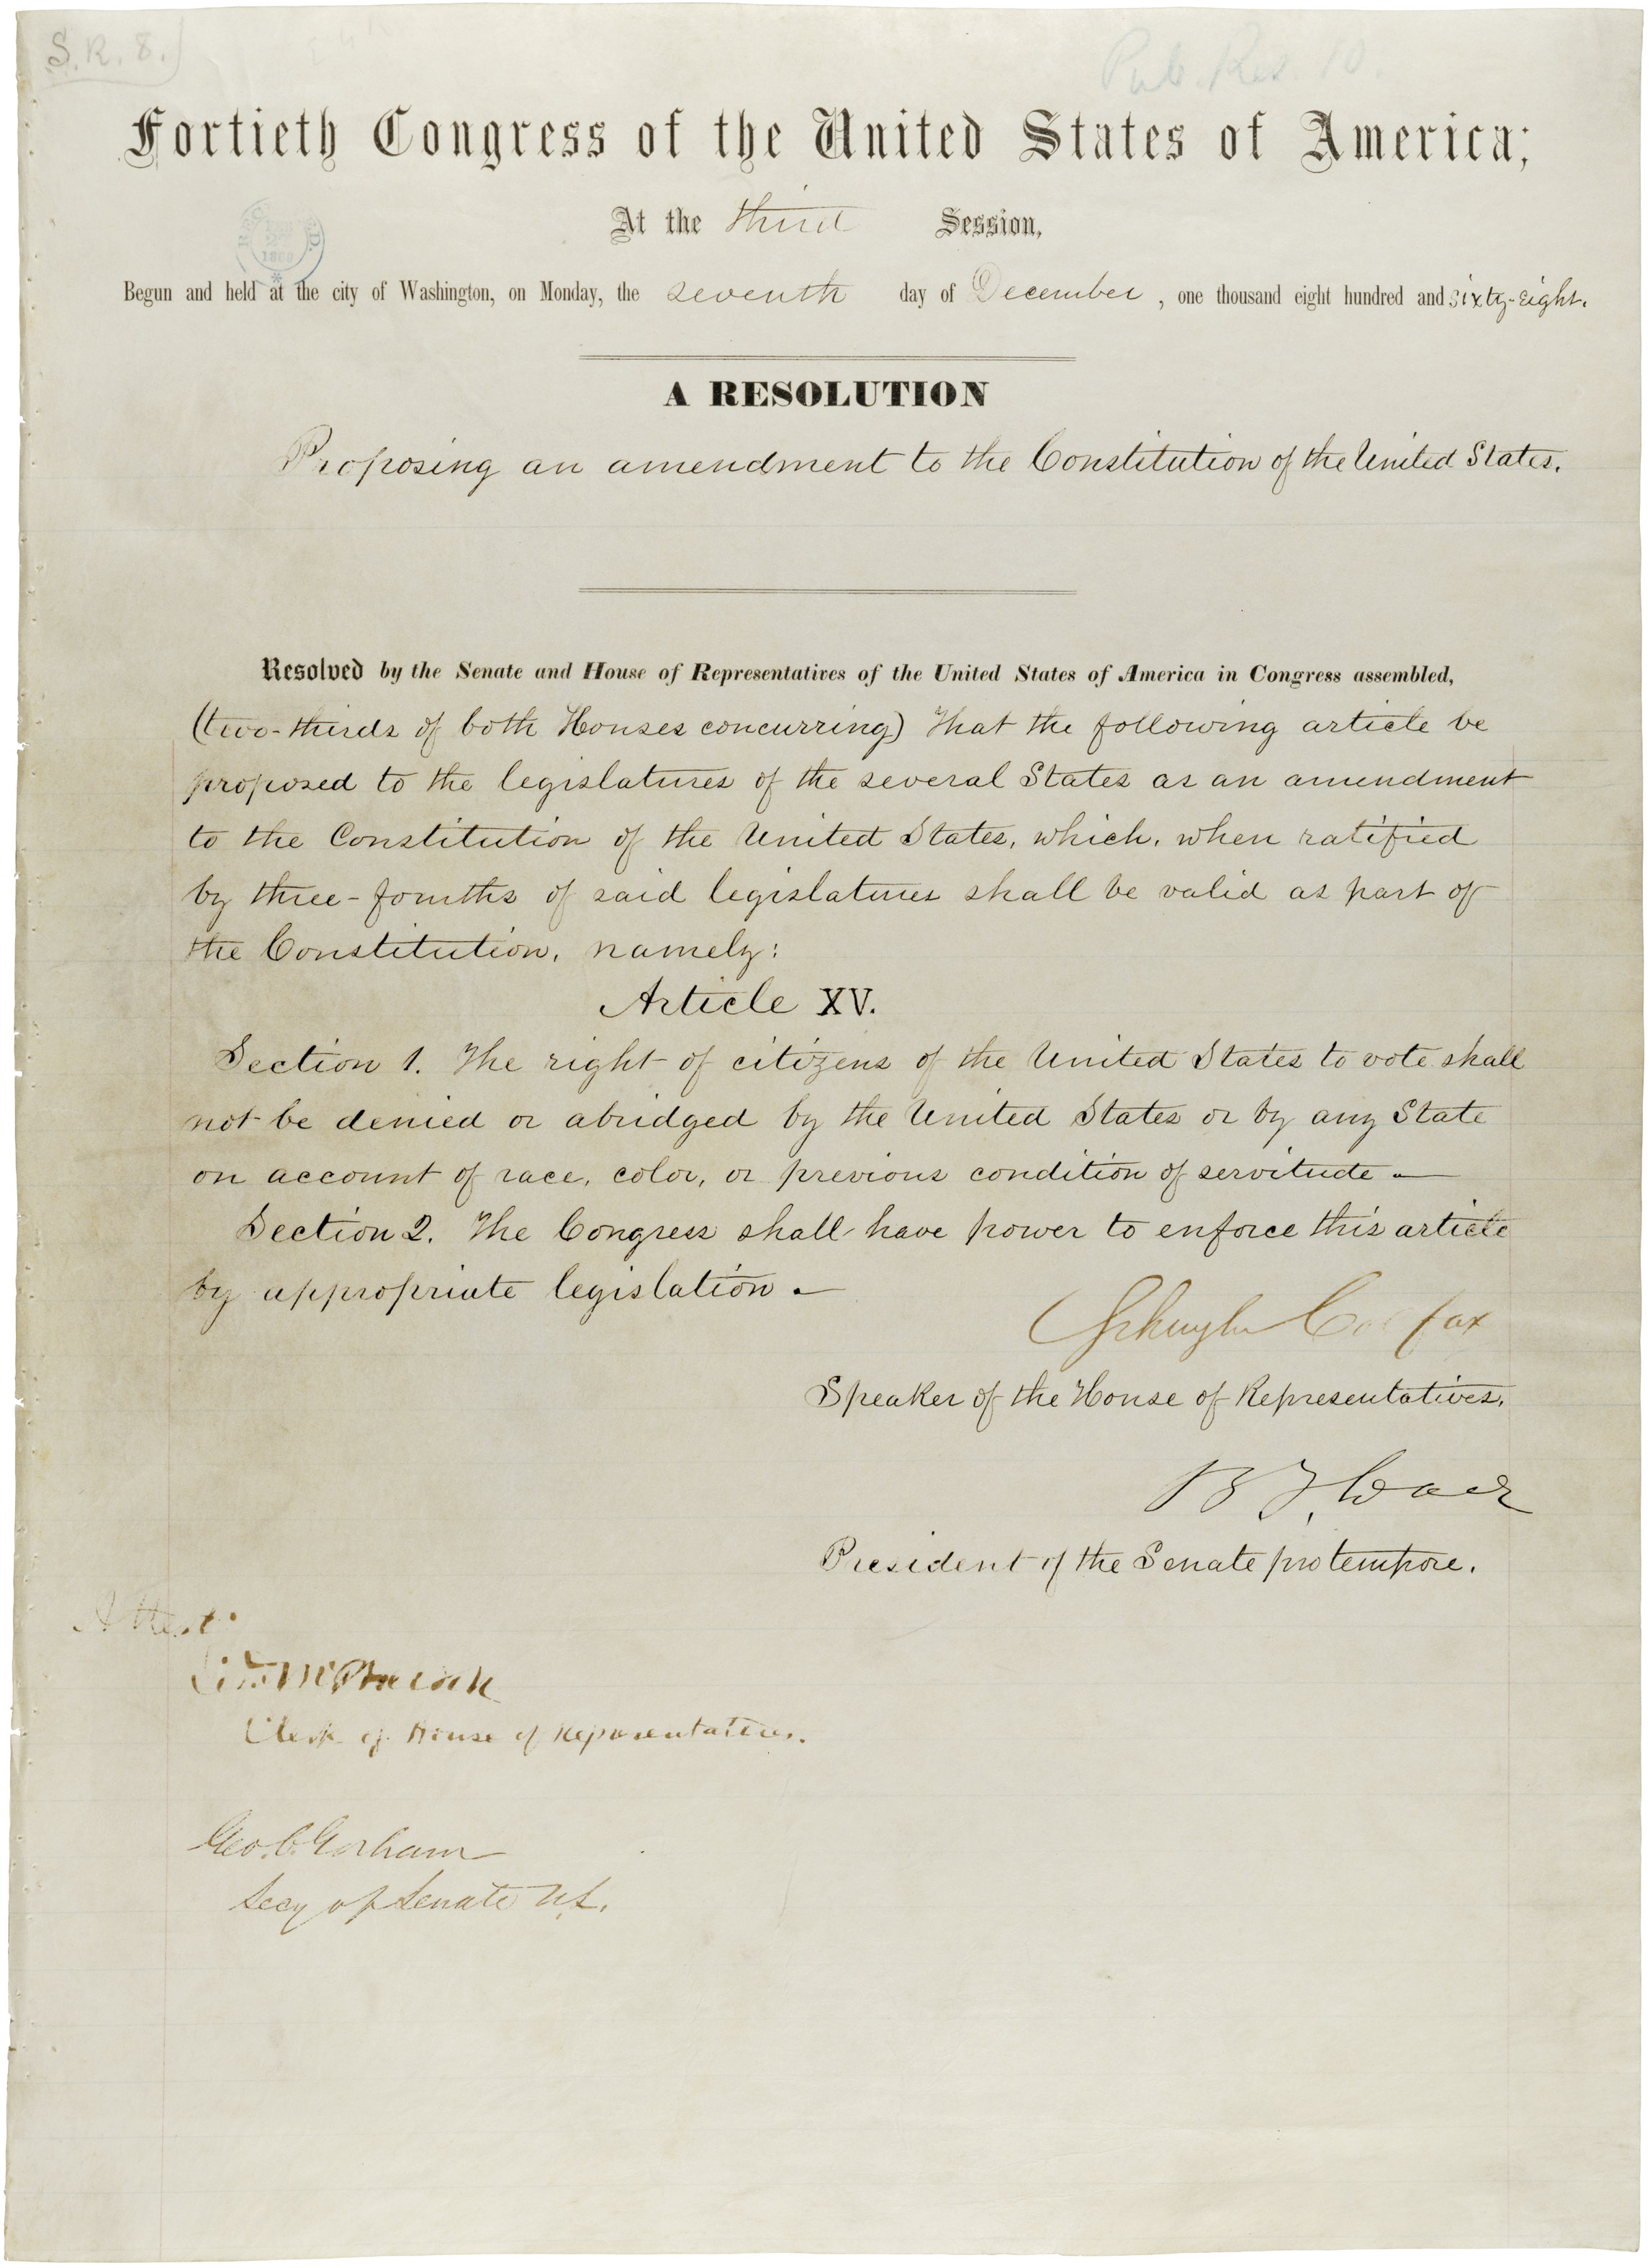 House Joint Resolution proposing the 15th Amendment to the Constitution, December 7, 1868; from the General Records of the United States Government